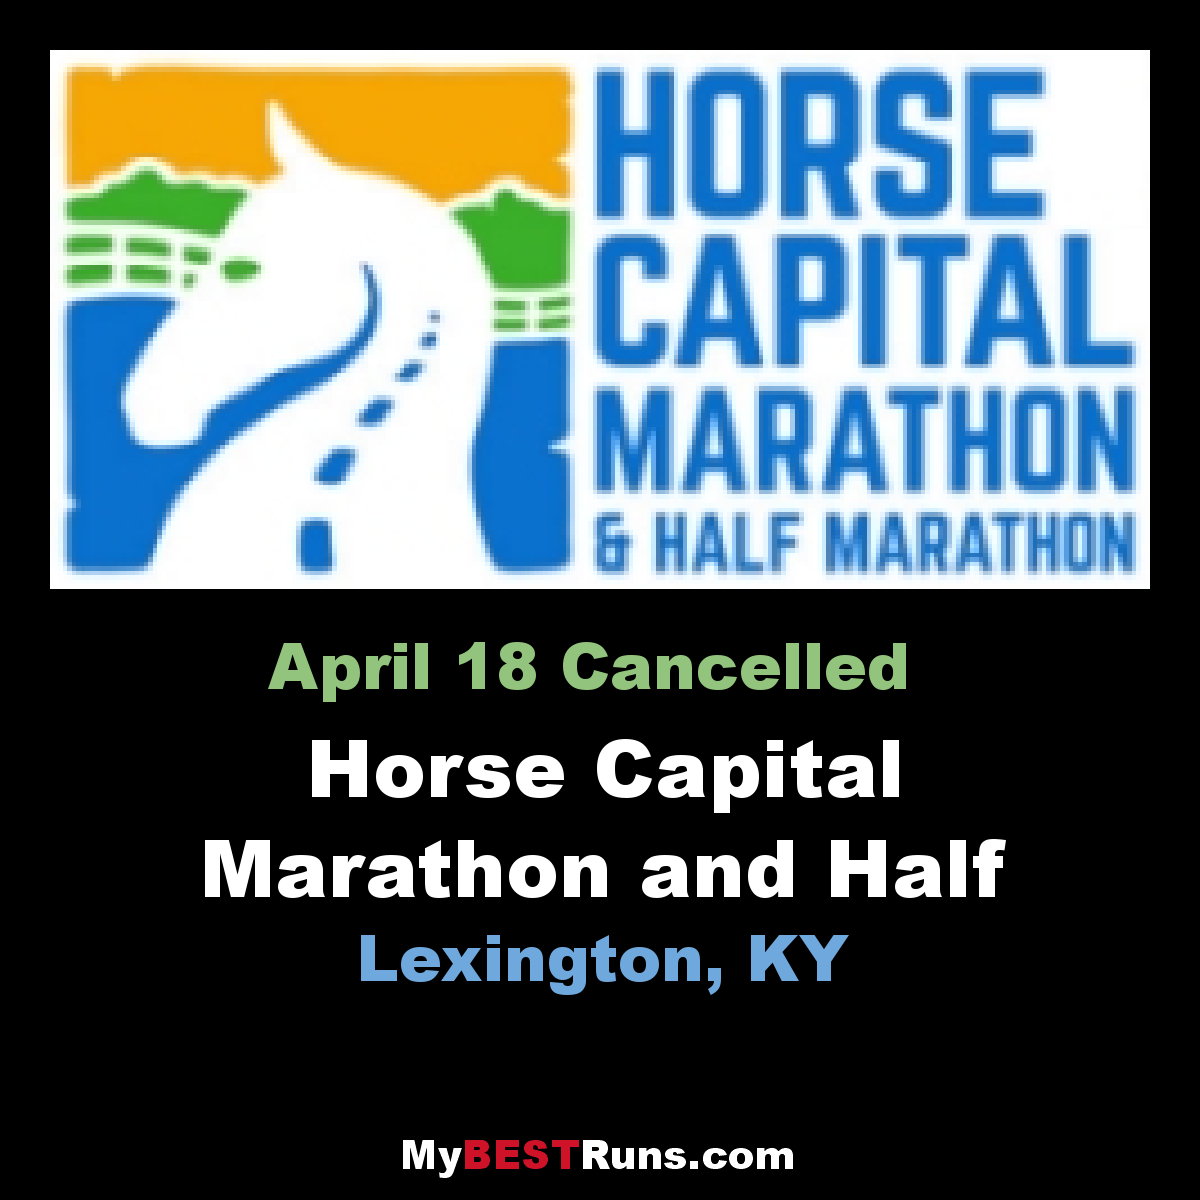 Horse Capital Marathon and Half Marathon